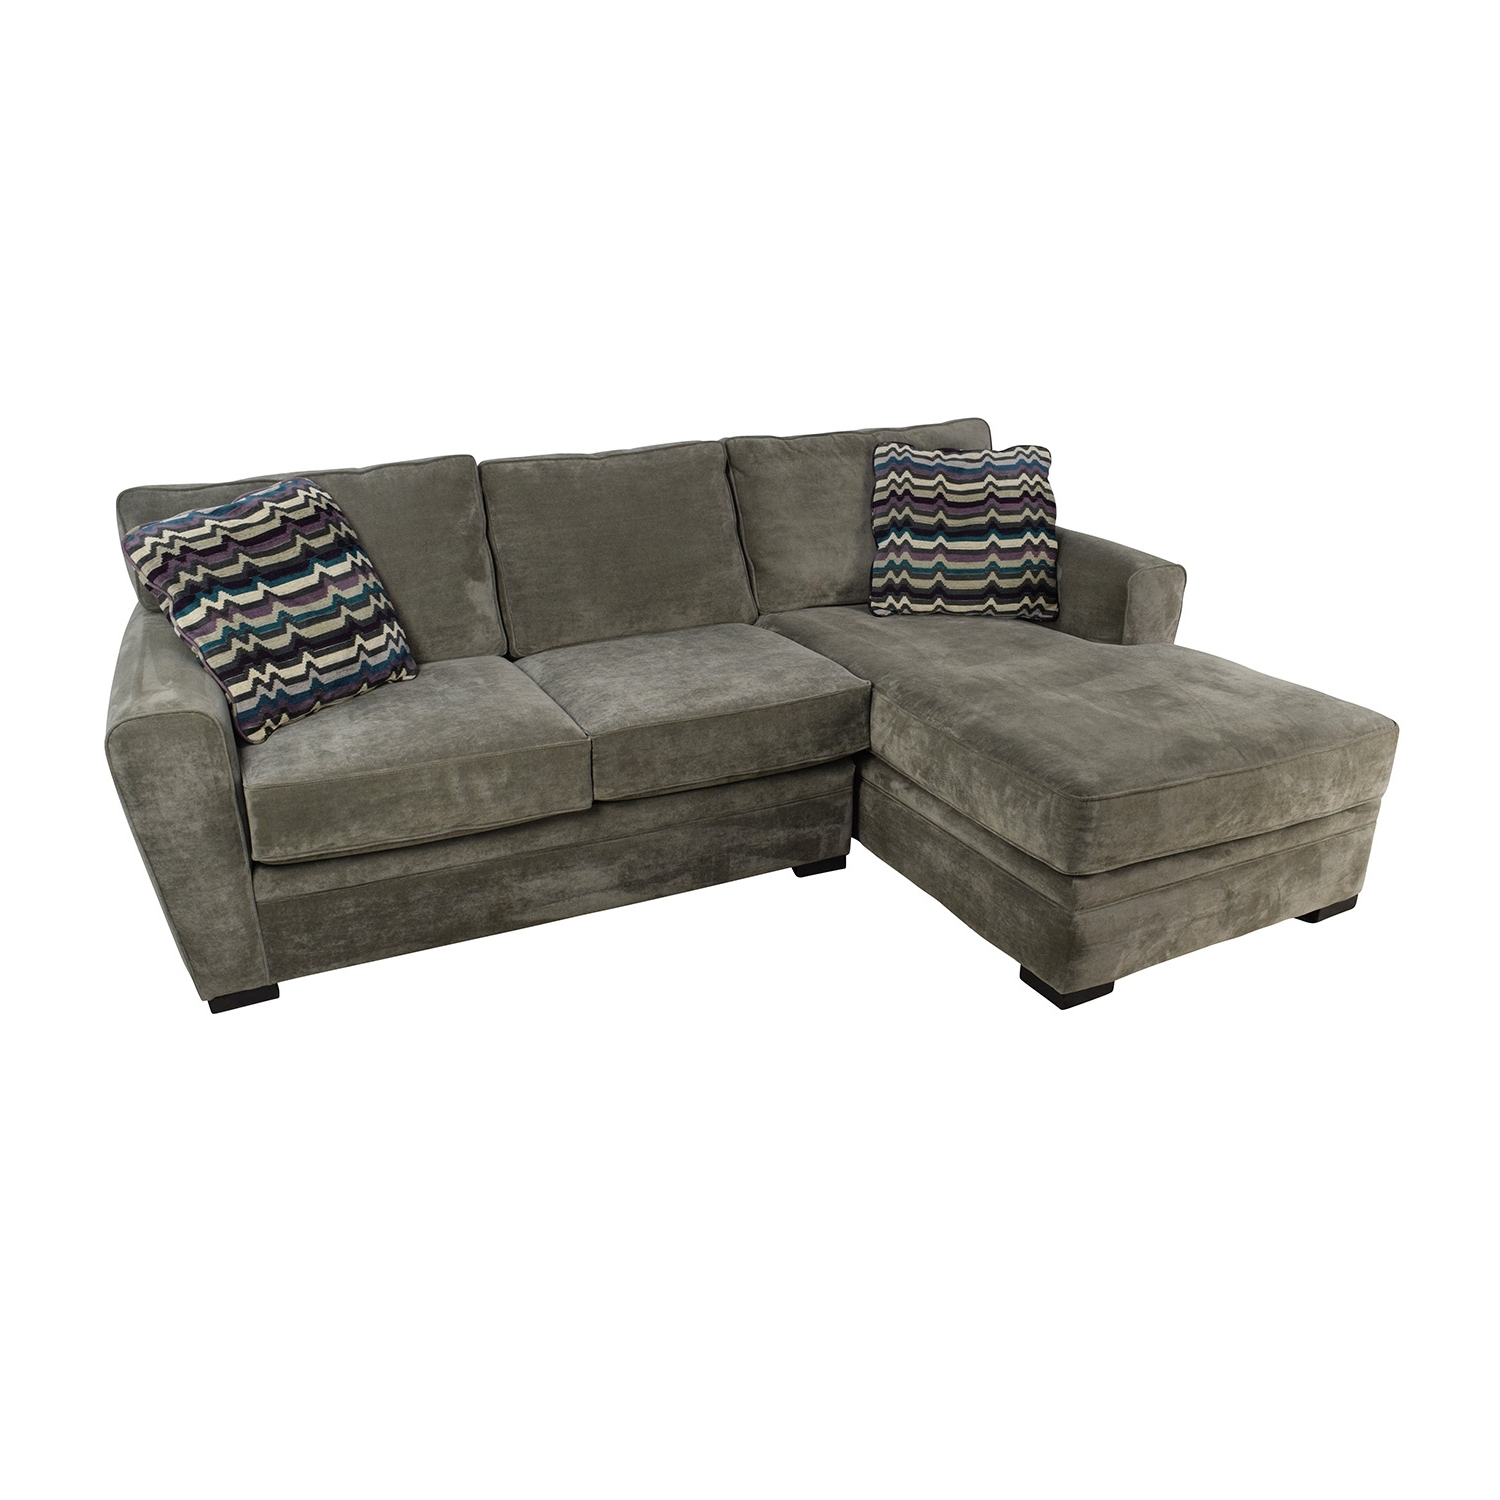 [%52% Off – Raymour & Flanigan Raymour & Flanigan Artemis Ii Inside 2019 Raymour And Flanigan Sectional Sofas|Raymour And Flanigan Sectional Sofas Within Preferred 52% Off – Raymour & Flanigan Raymour & Flanigan Artemis Ii|Favorite Raymour And Flanigan Sectional Sofas Intended For 52% Off – Raymour & Flanigan Raymour & Flanigan Artemis Ii|Recent 52% Off – Raymour & Flanigan Raymour & Flanigan Artemis Ii Intended For Raymour And Flanigan Sectional Sofas%] (View 1 of 20)